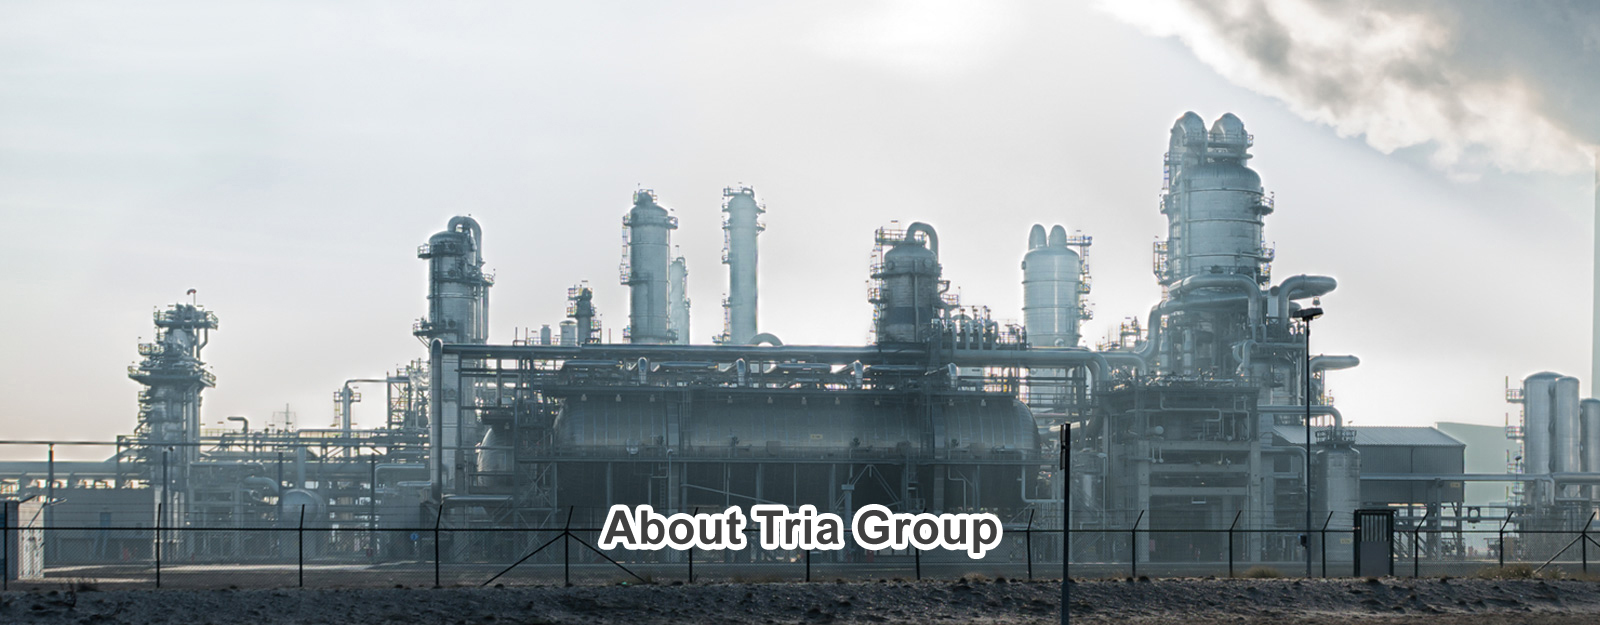 About TRIA Group